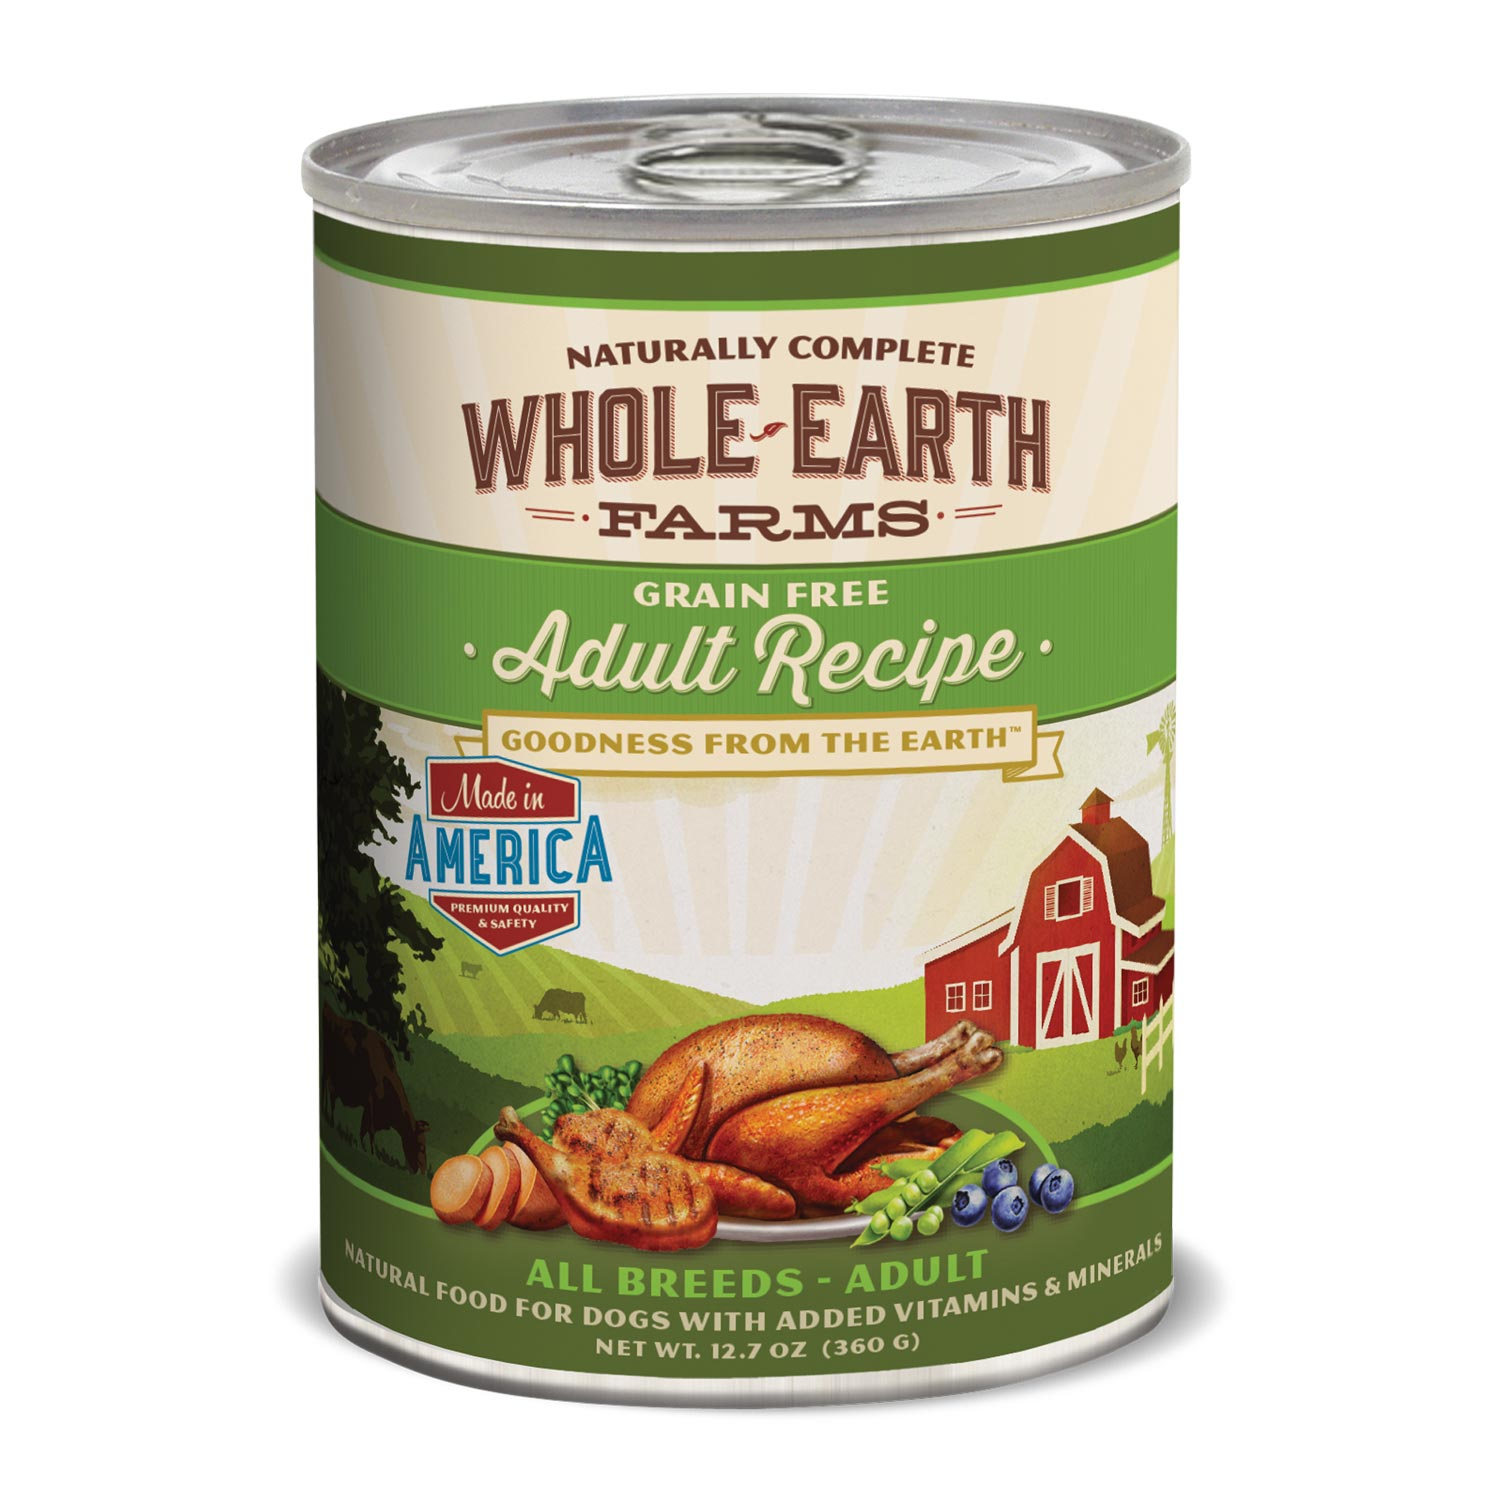 Whole Earth Farms Grain Free Adult Canned Dog Food